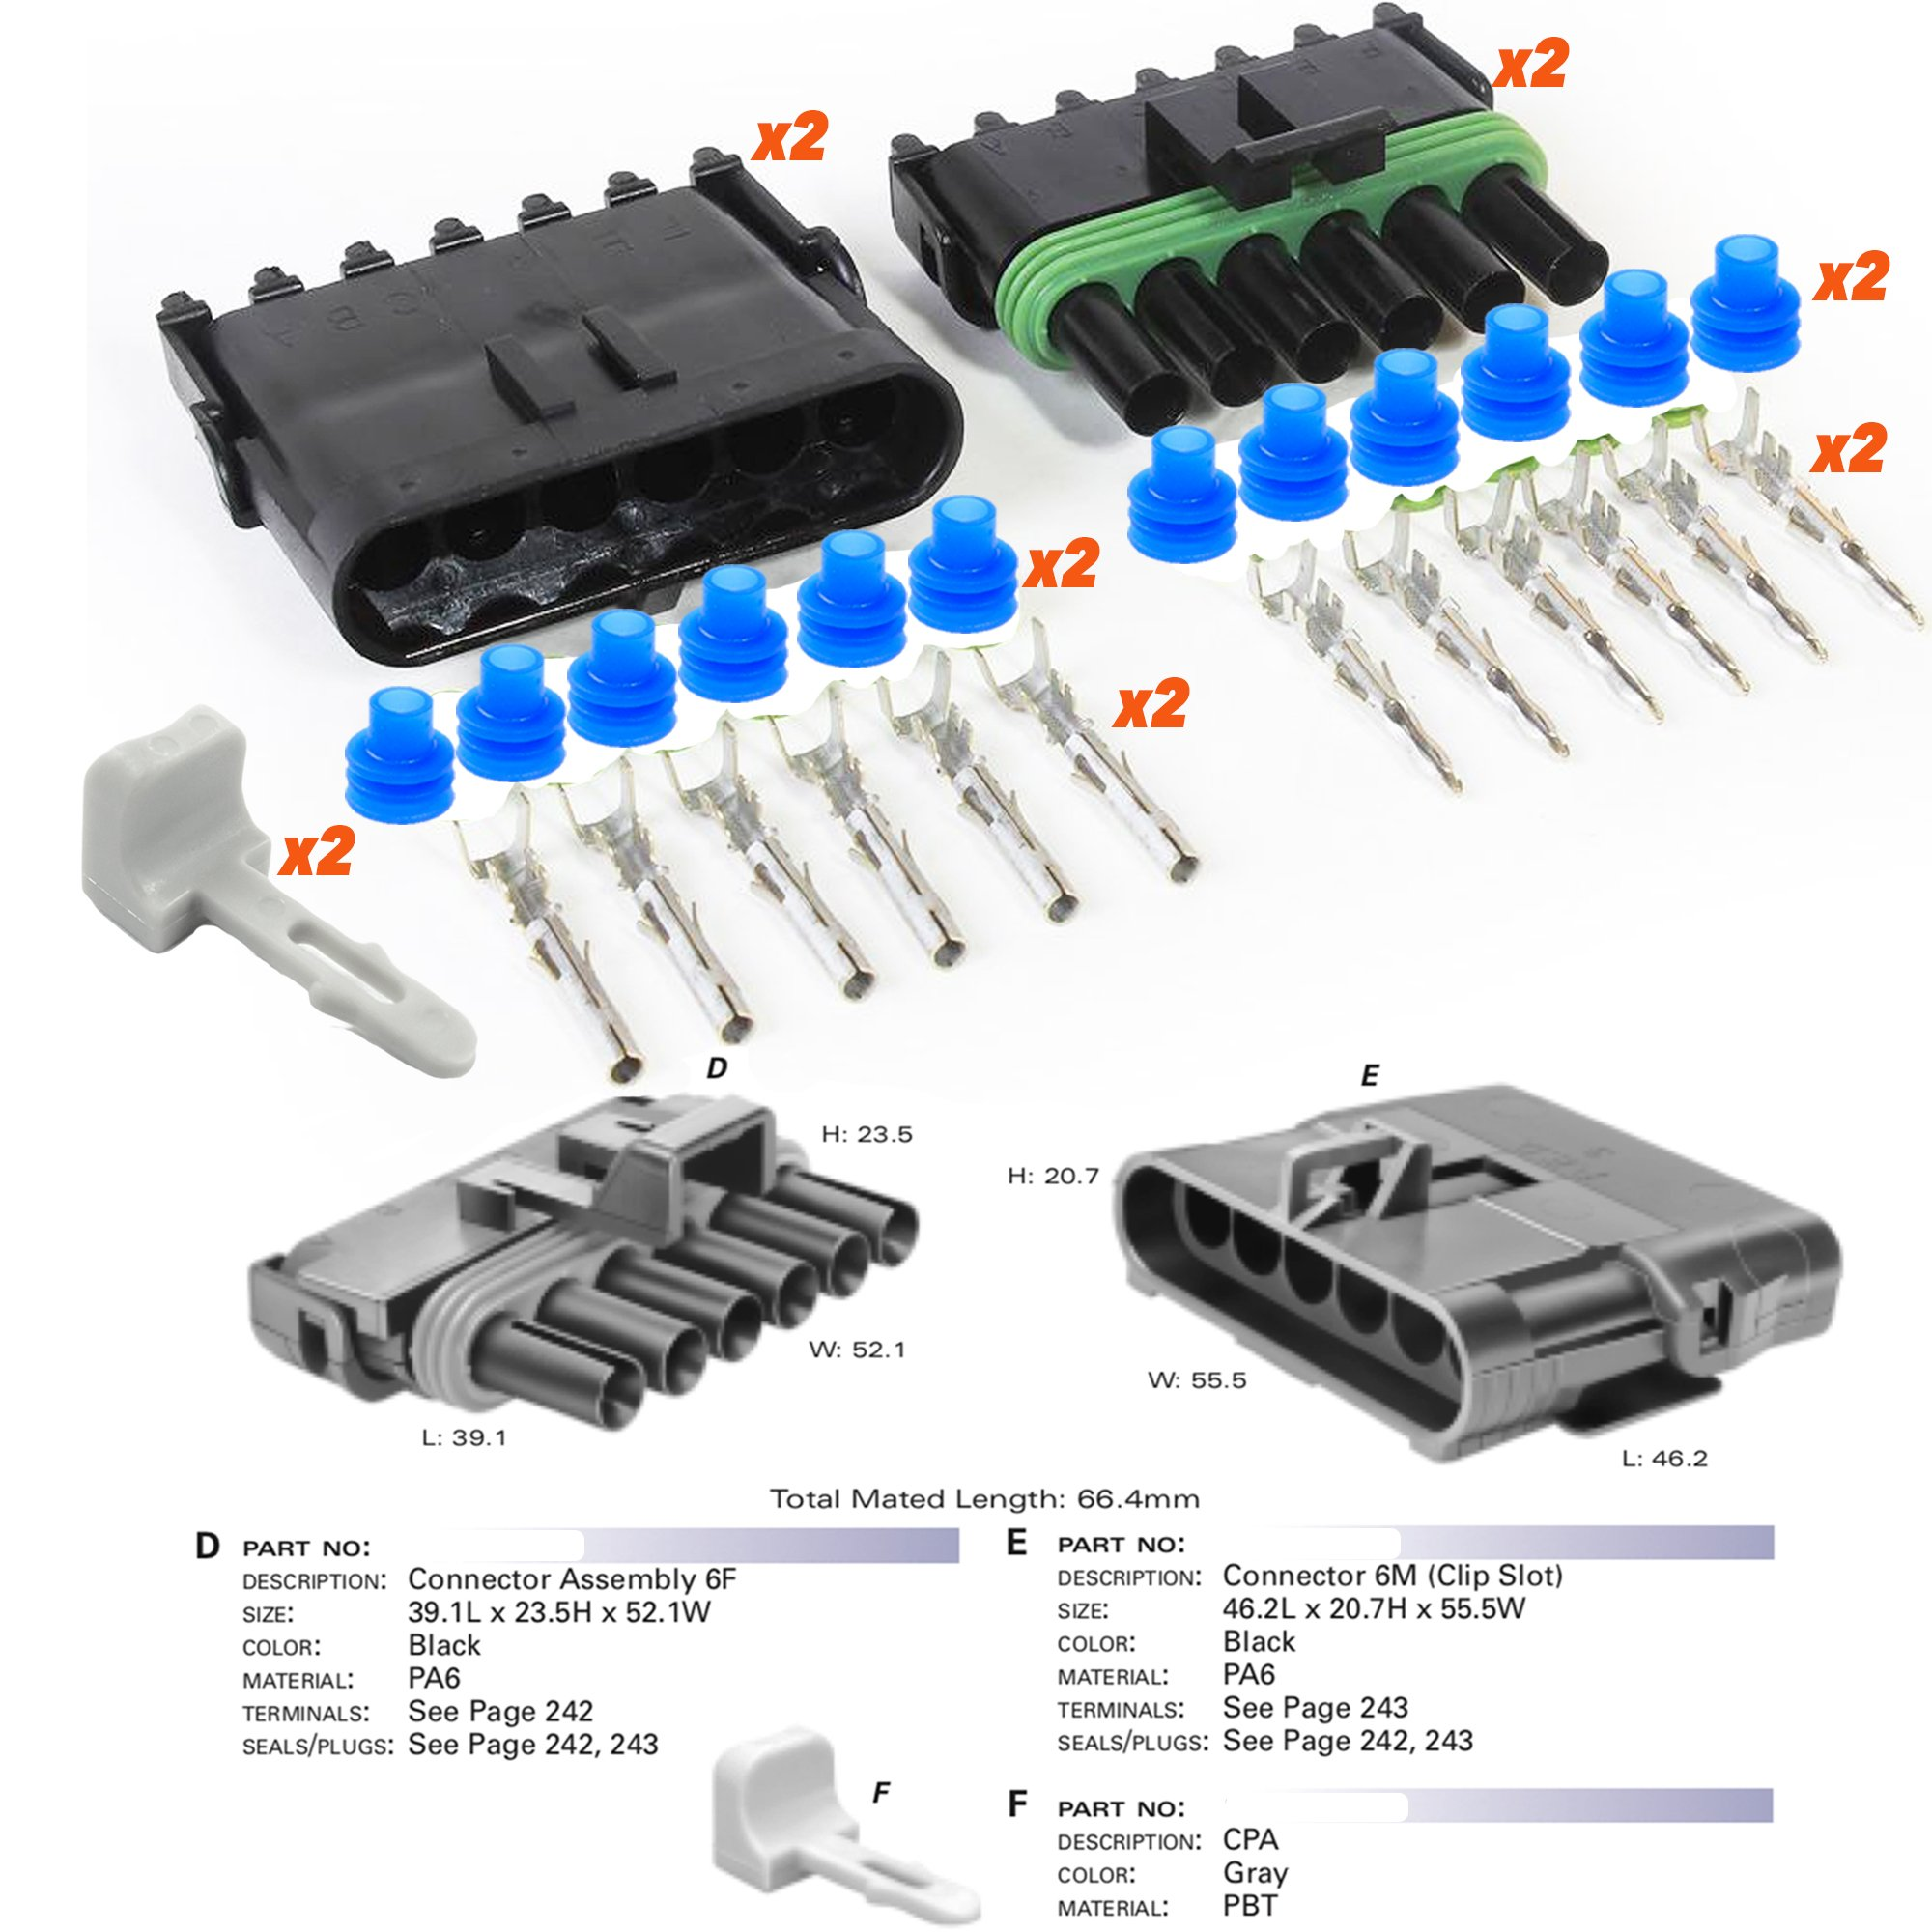 Delphi Packard (6 Circuits) 2 Match Set Weatherpack, Waterproof, Terminal Kit 10 12 GA, with CPA (Connector Position Assurance)